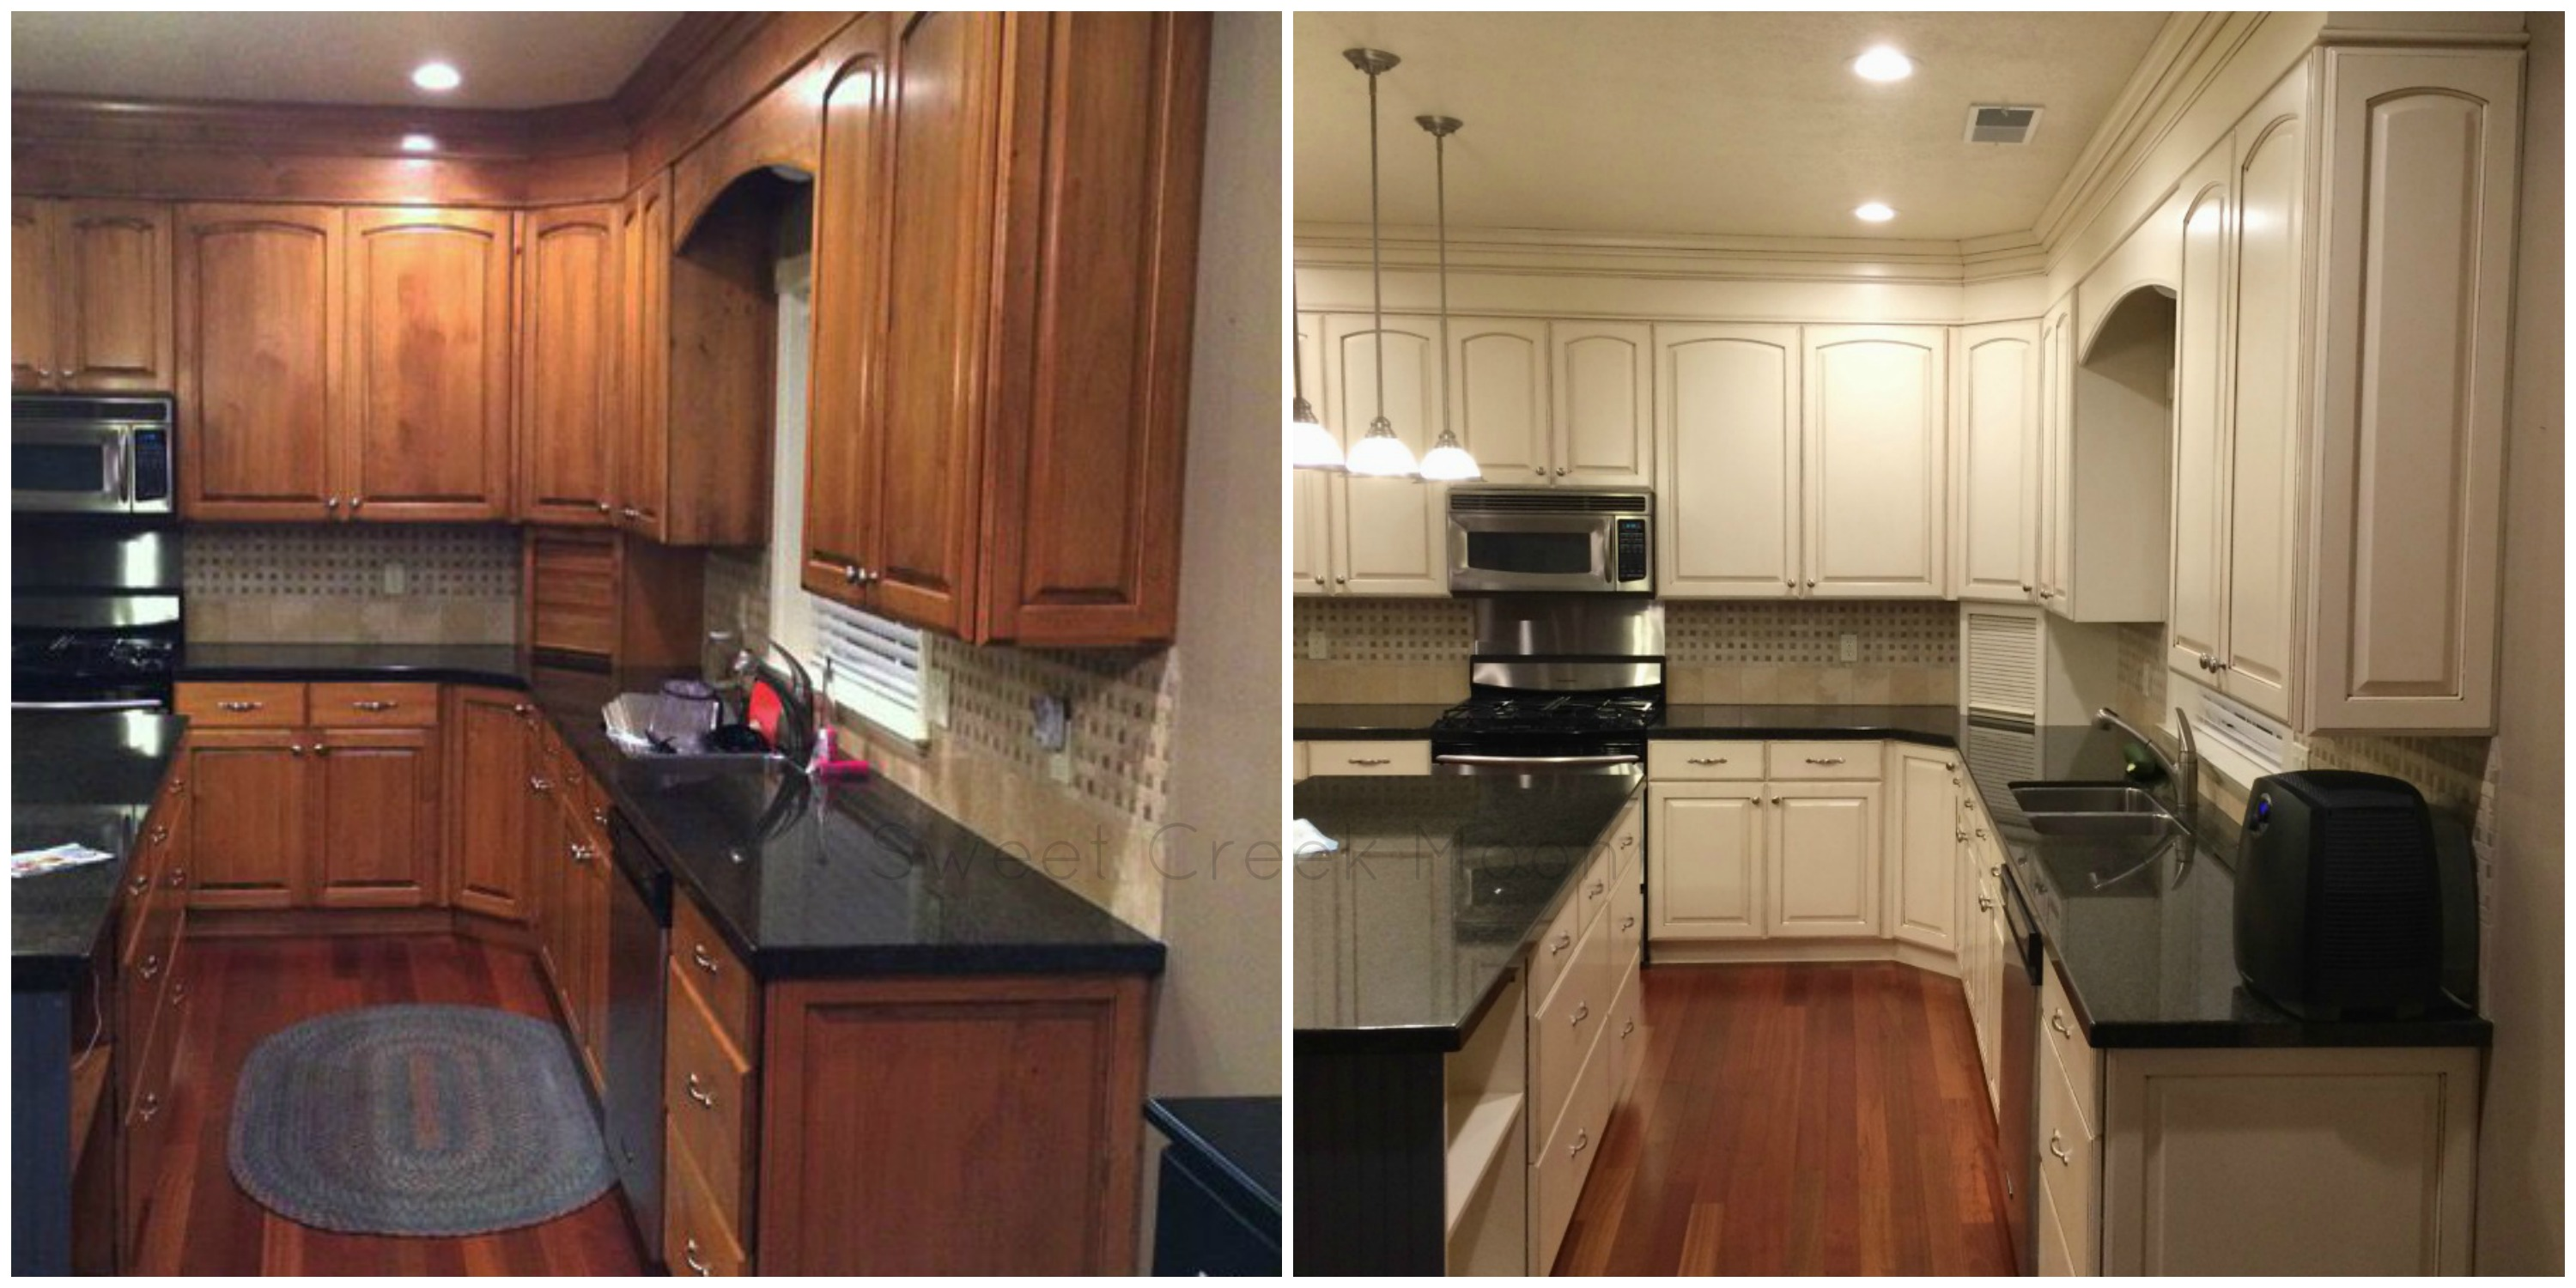 Kitchen cabinet makeovers before and after 10 diy kitchen for Kitchen cupboard makeover before and after